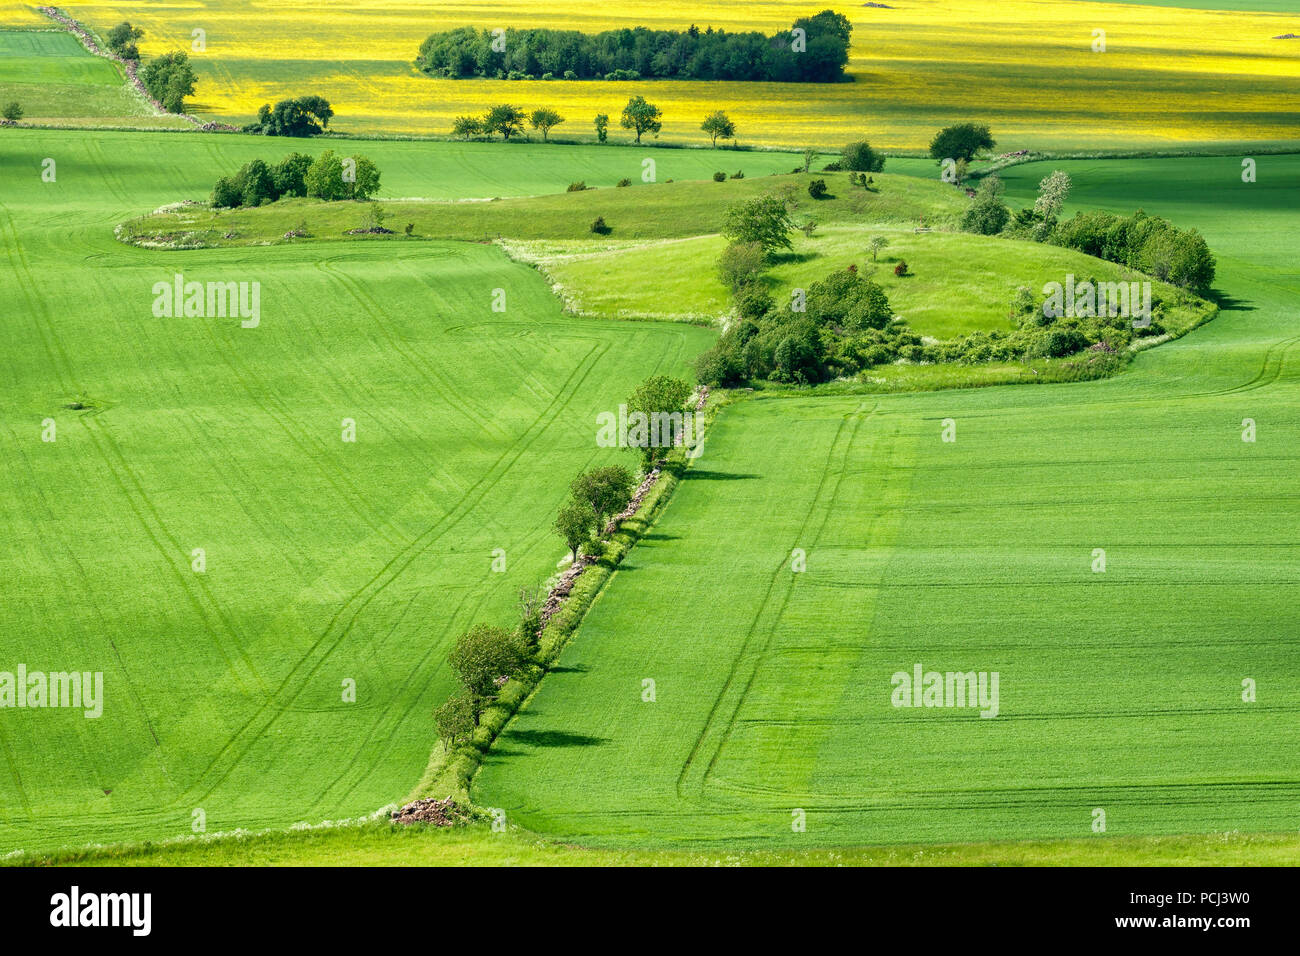 Arable land with trees at the fields - Stock Image